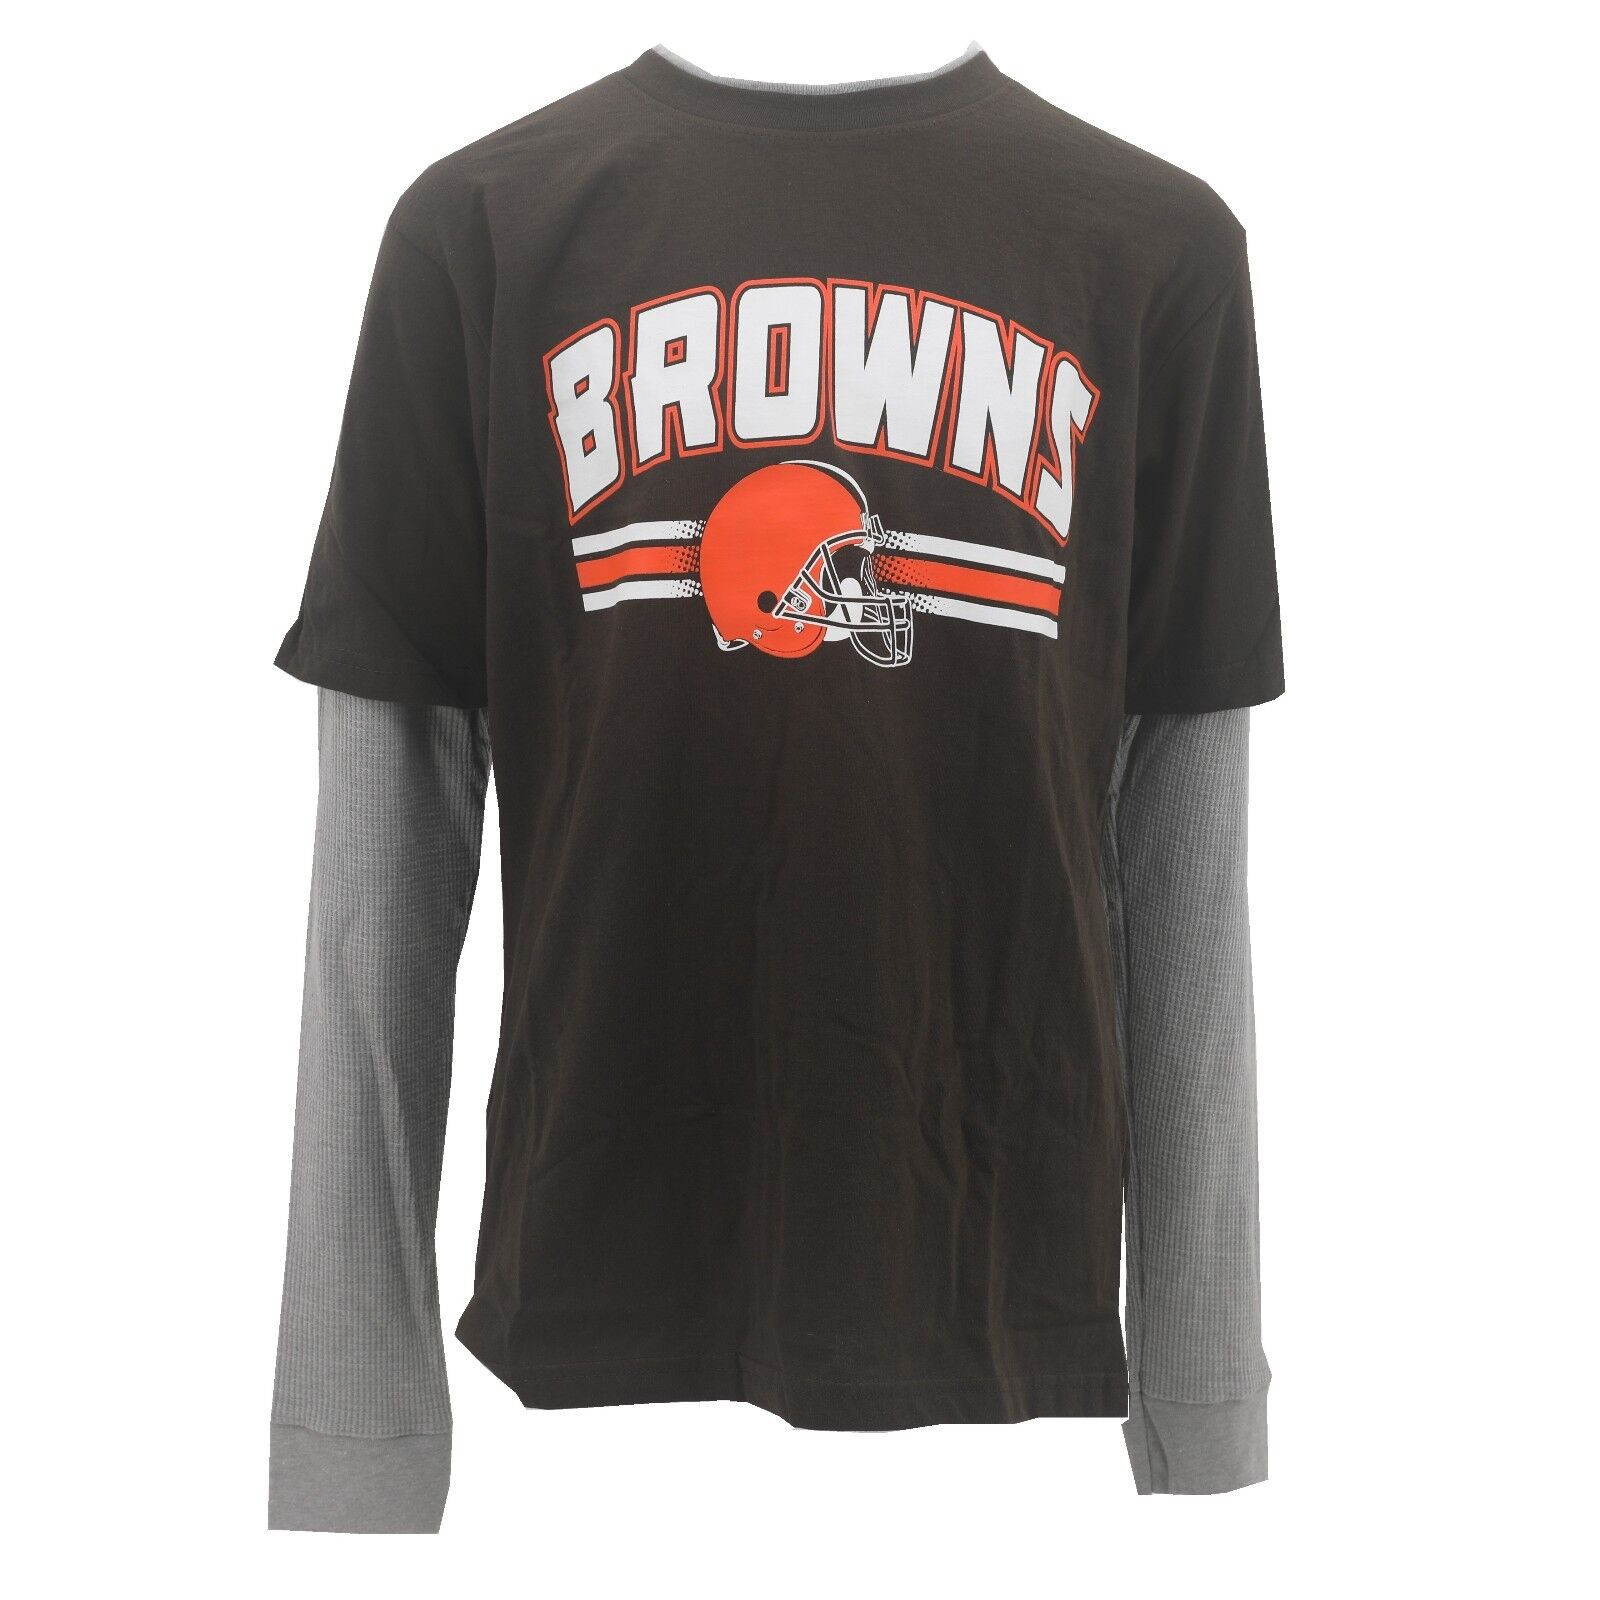 ce1cc02b7 Cleveland Browns Kids Youth Size Long Sleeve shirt NFL Official New With  Tags